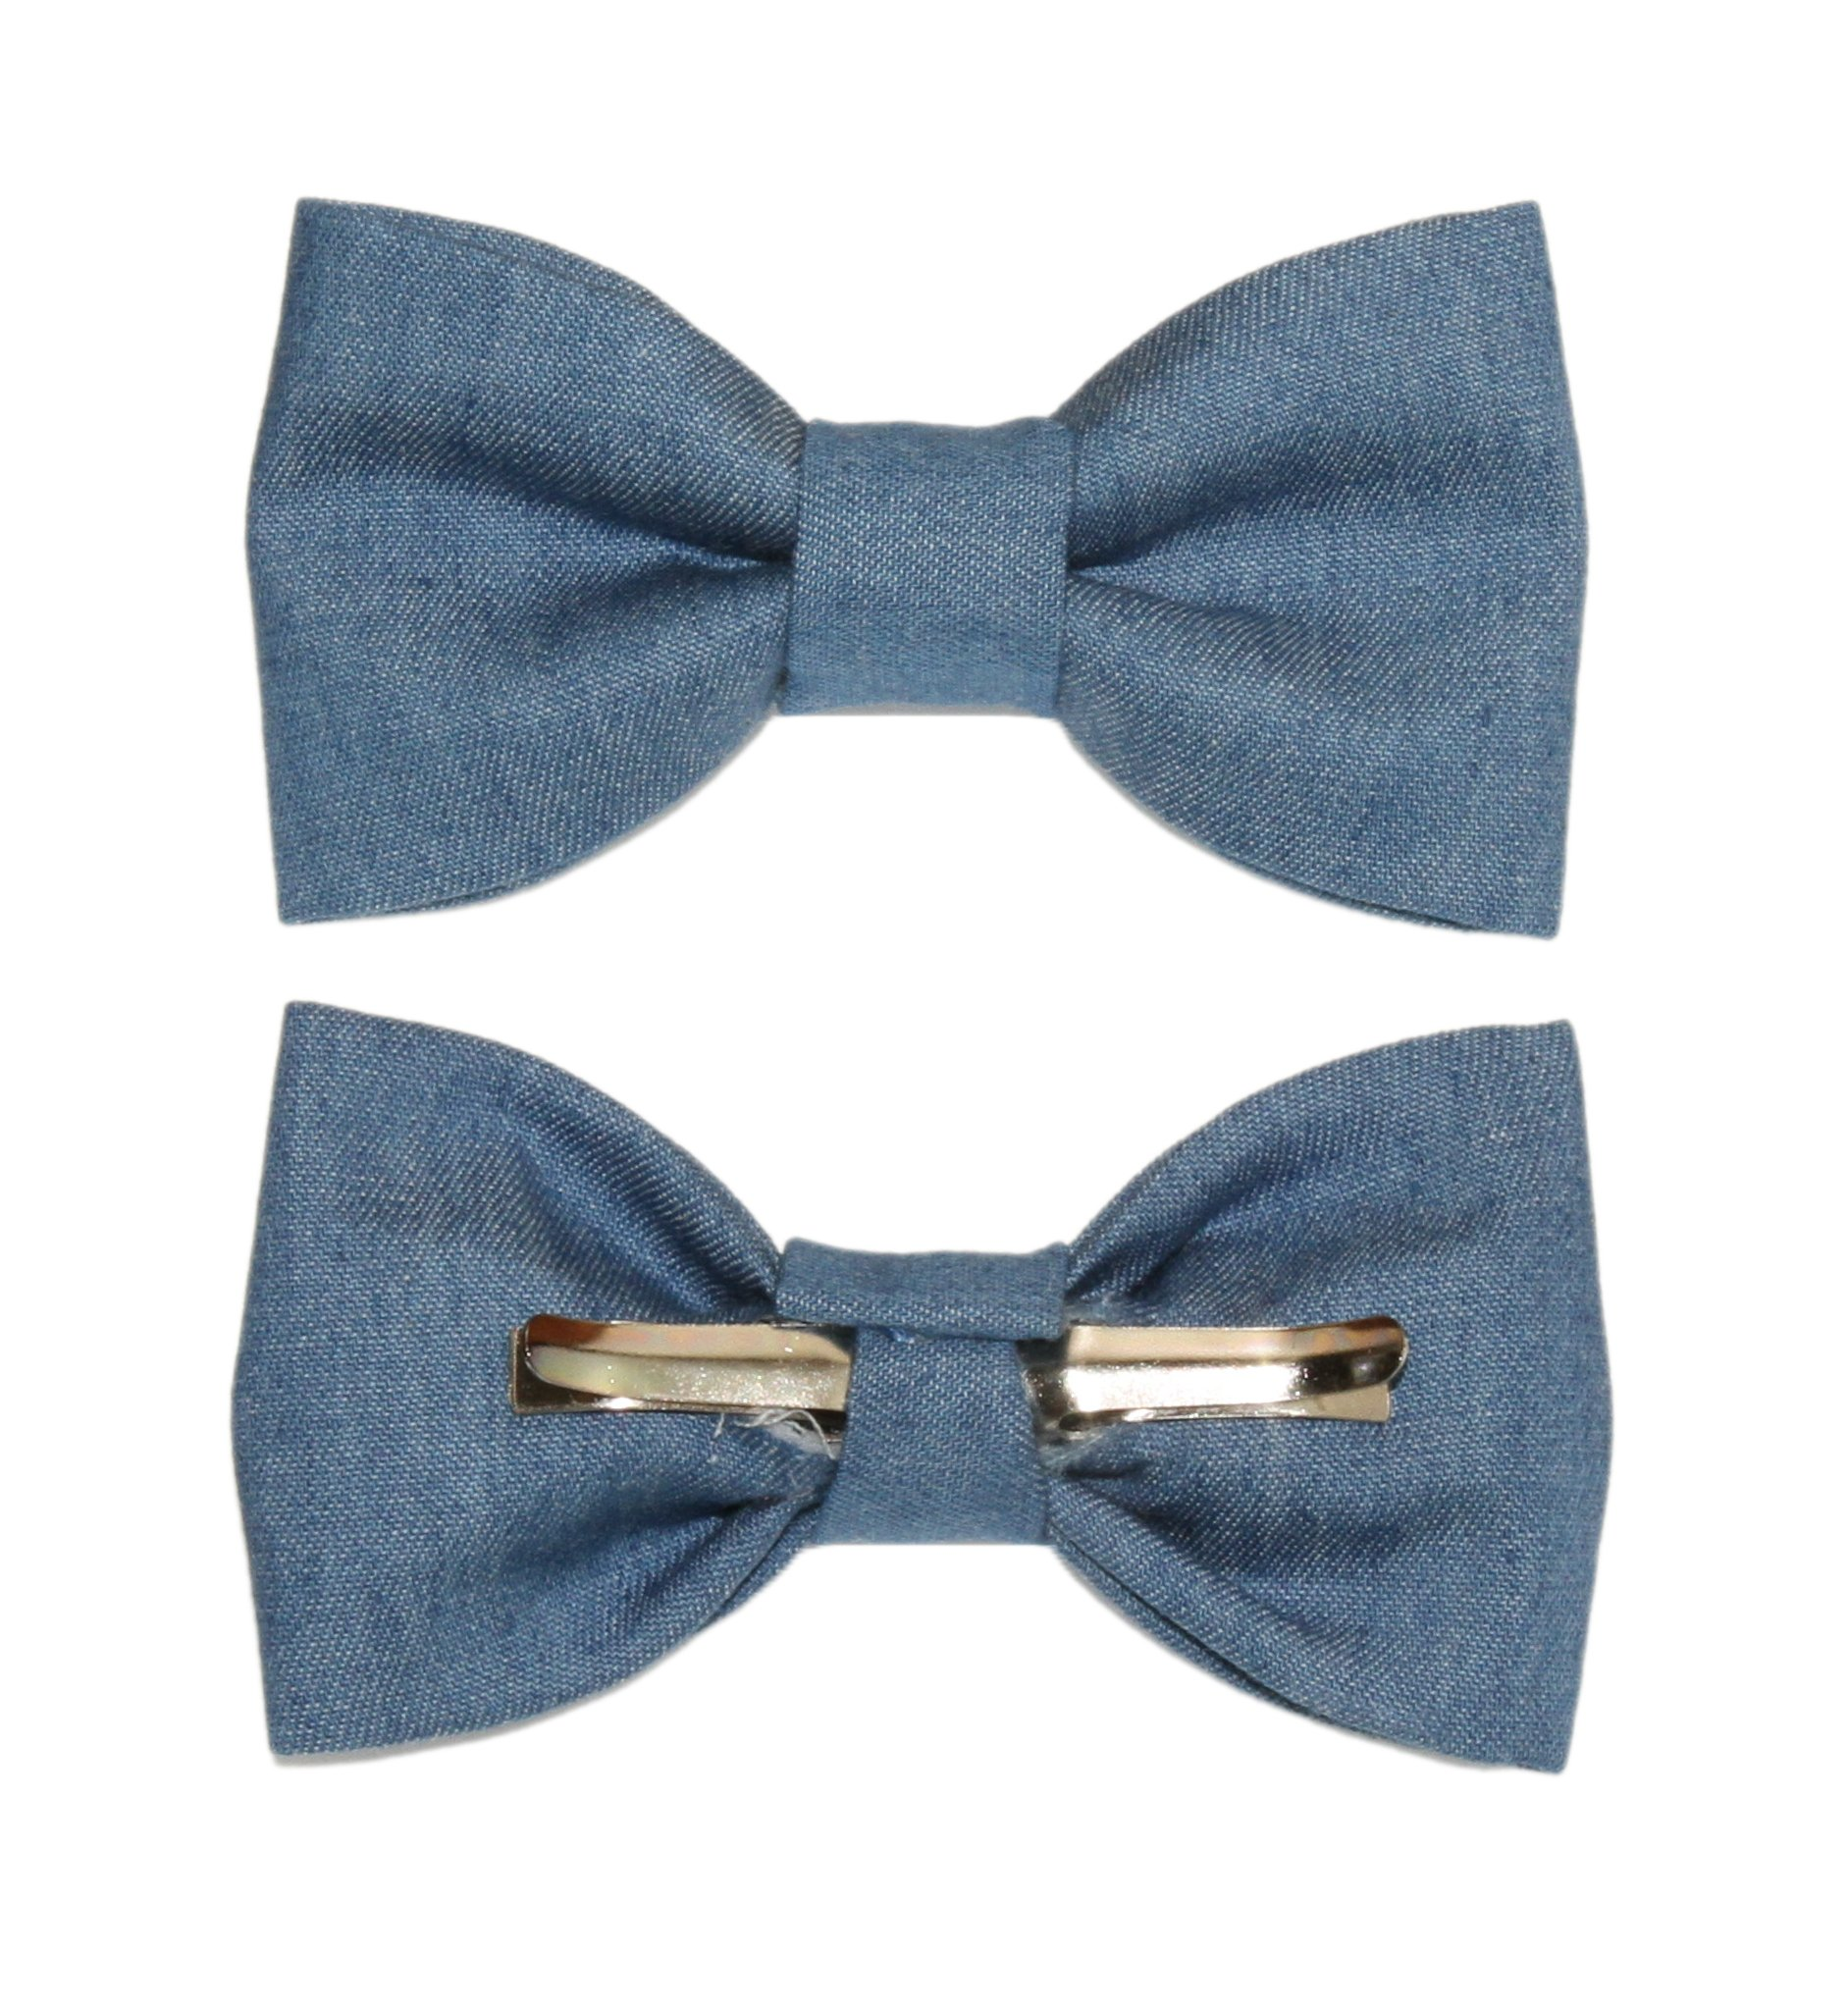 Toddler Boy 4T 5T Medium Blue Denim Clip On Cotton Novelty Bow Tie